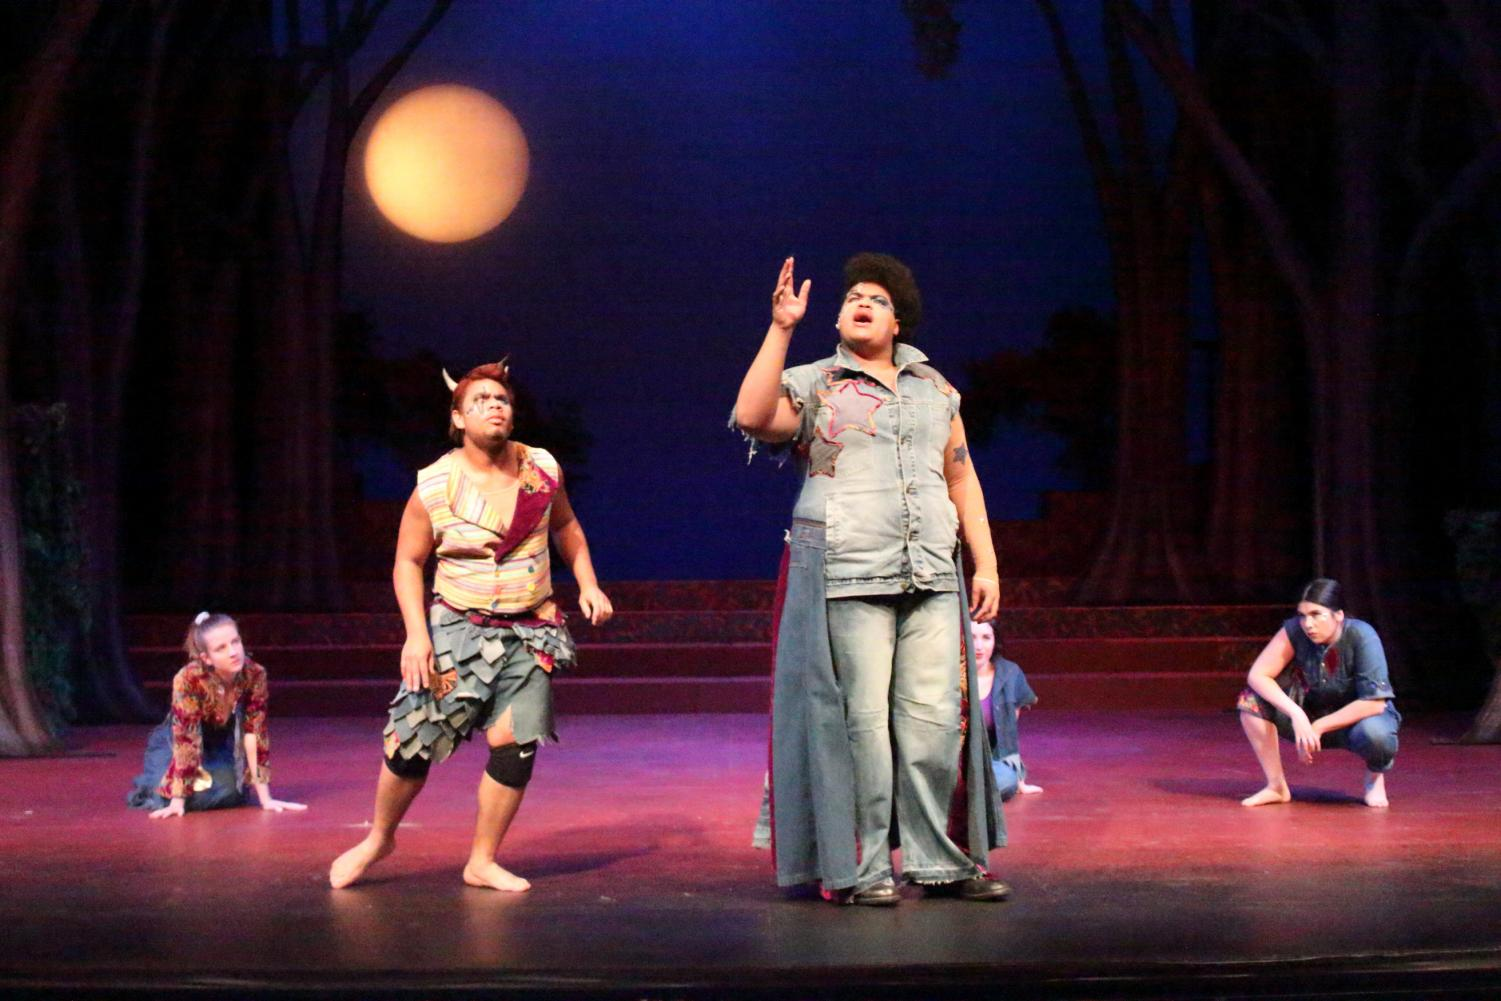 Miles Meckling and William Schmidt take the stage during the Sacramento State Department of Theater and Dance's production of A Midsummer Night's Dream on April 11, 2018 in Shasta Hall.